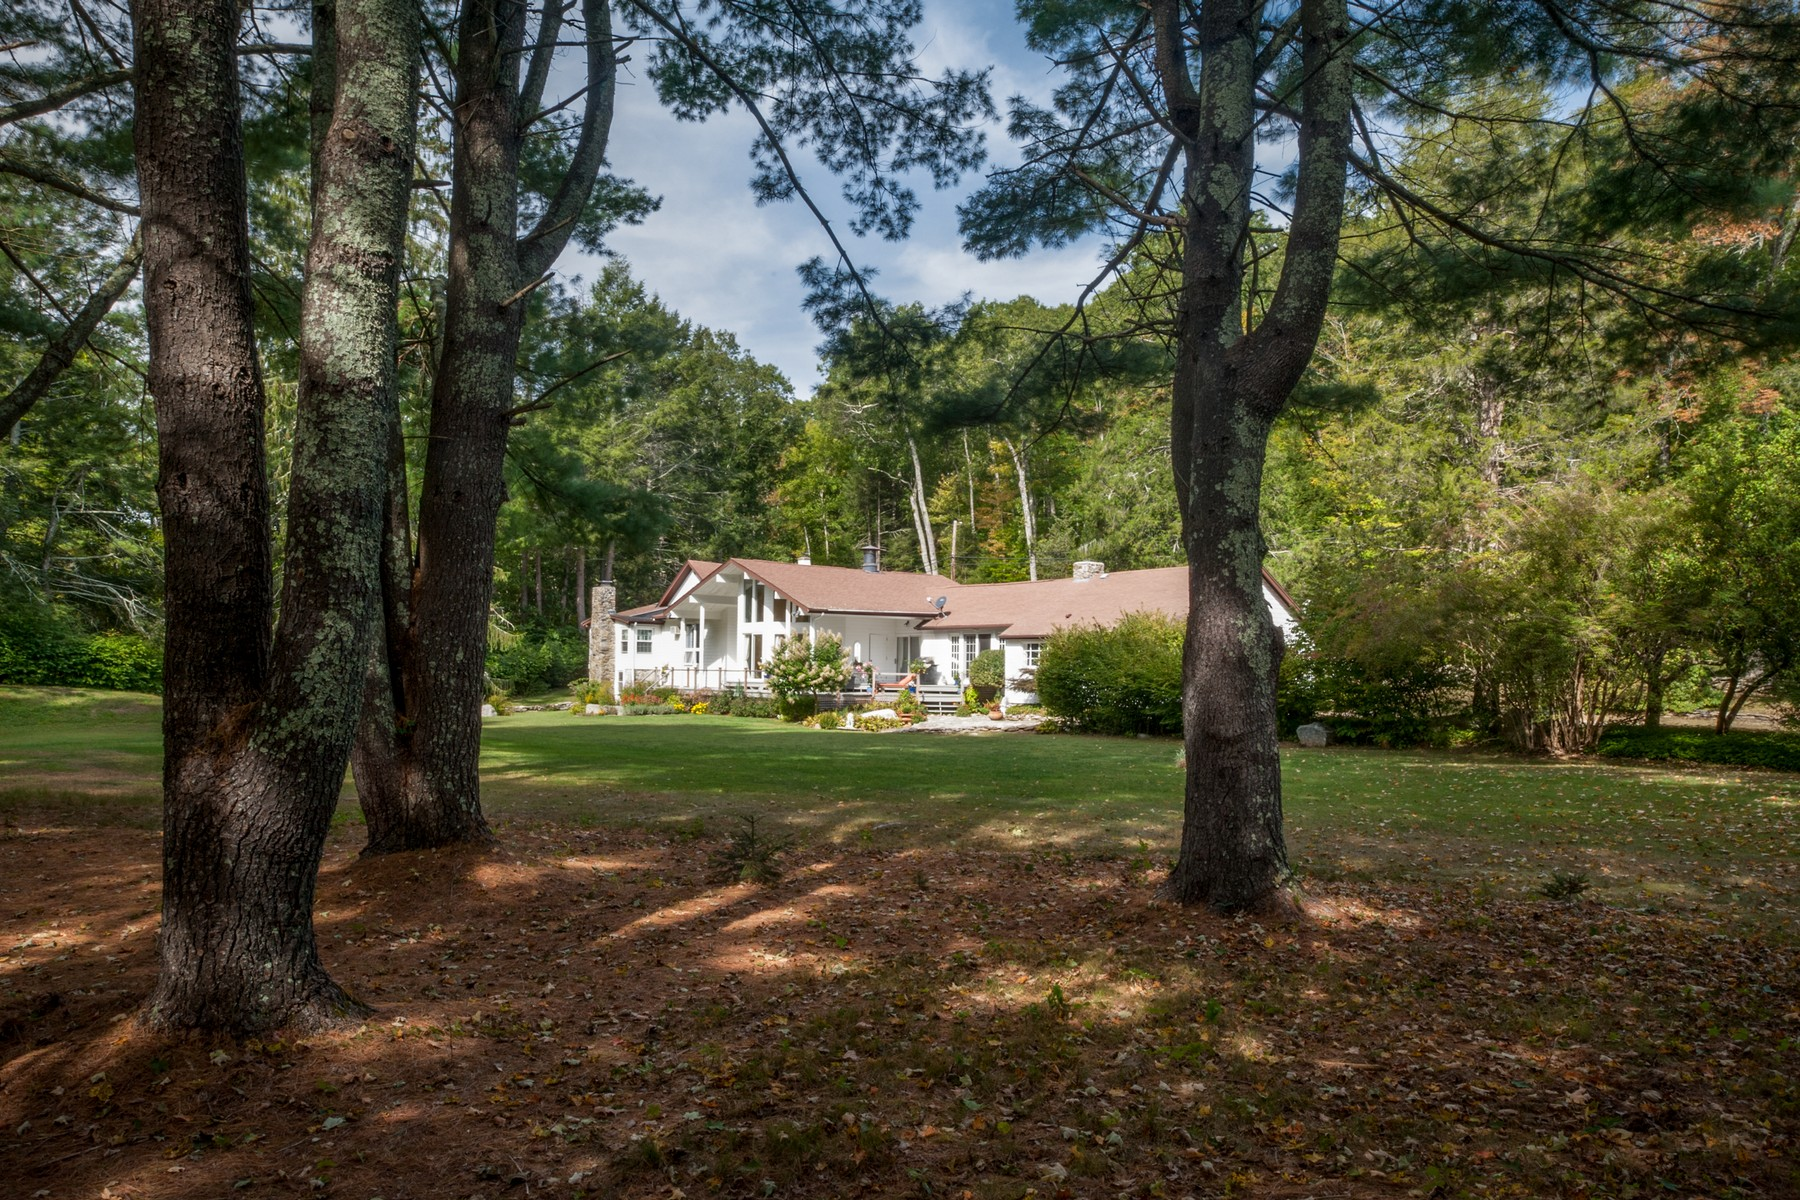 Single Family Home for Sale at Modern Meets Country 35 Beaver Brook Road Lyme, Connecticut 06371 United States